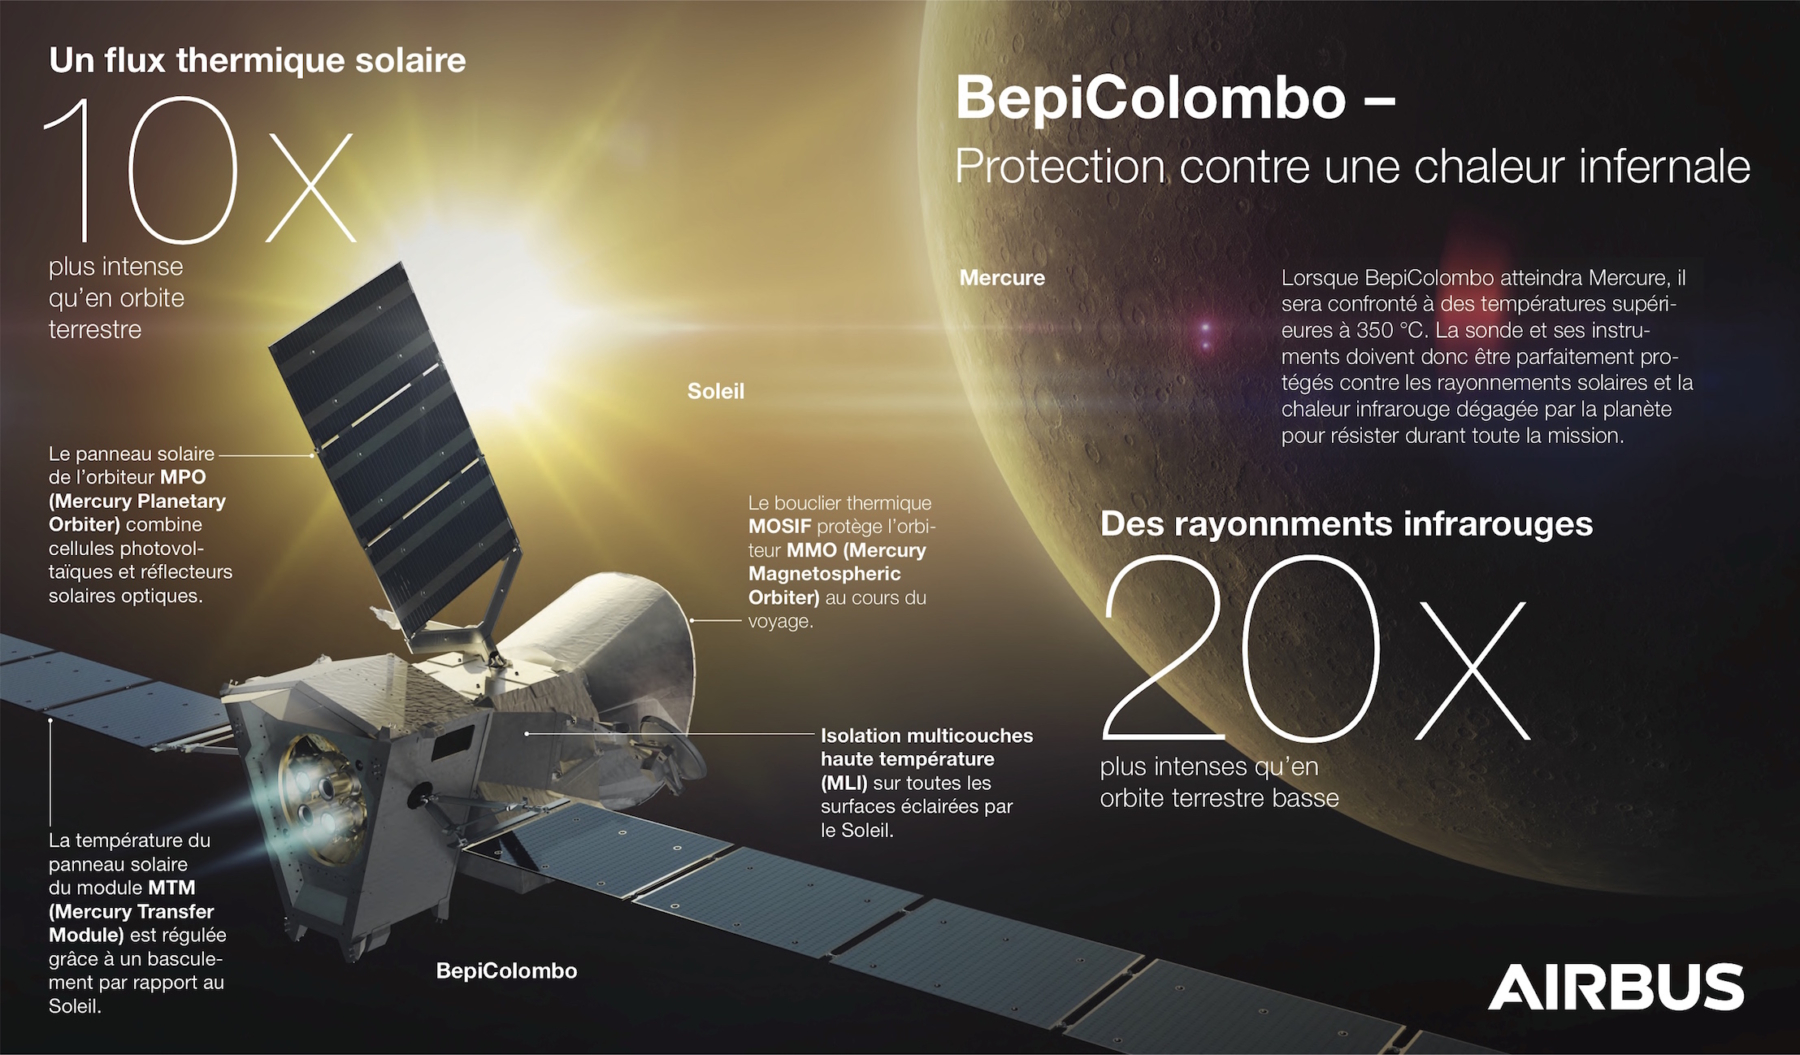 Protection thermique de BepiColombo © Airbus